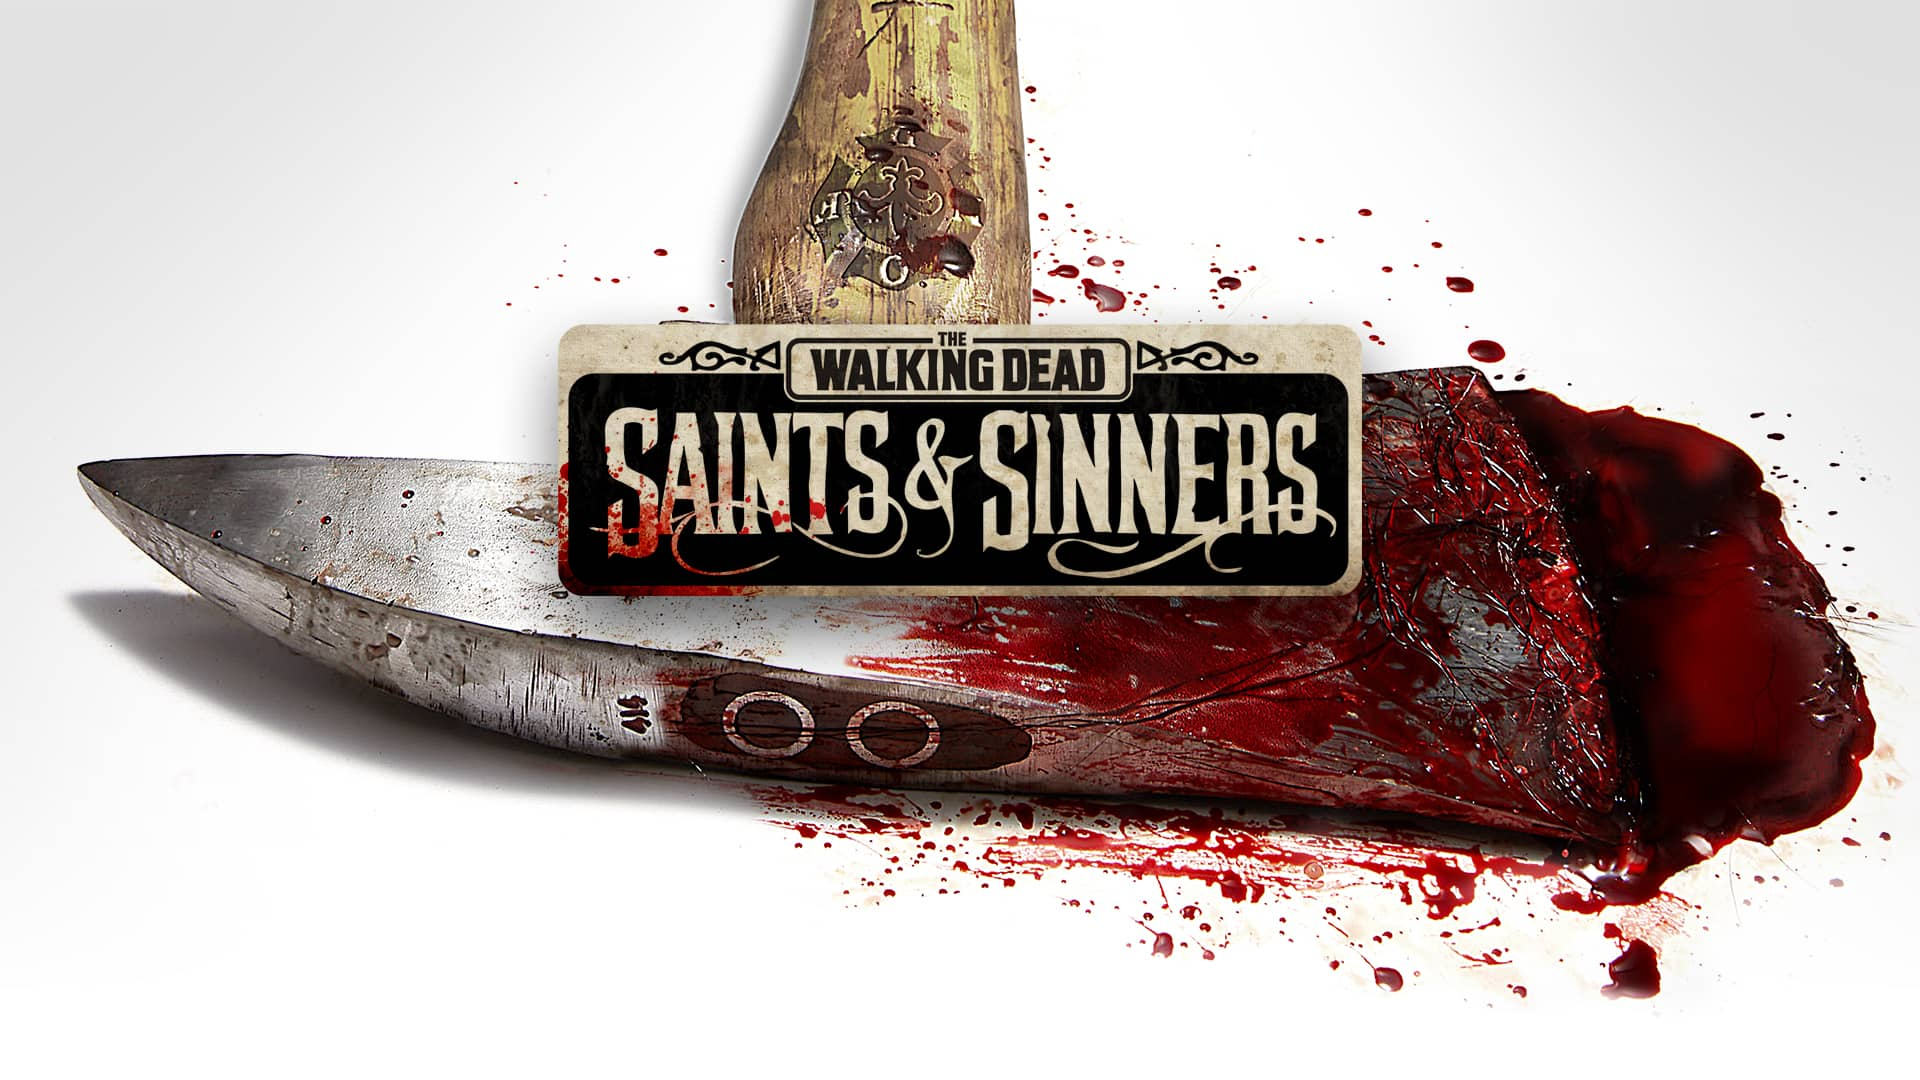 The-Walking-Dead-Saints-Sinners